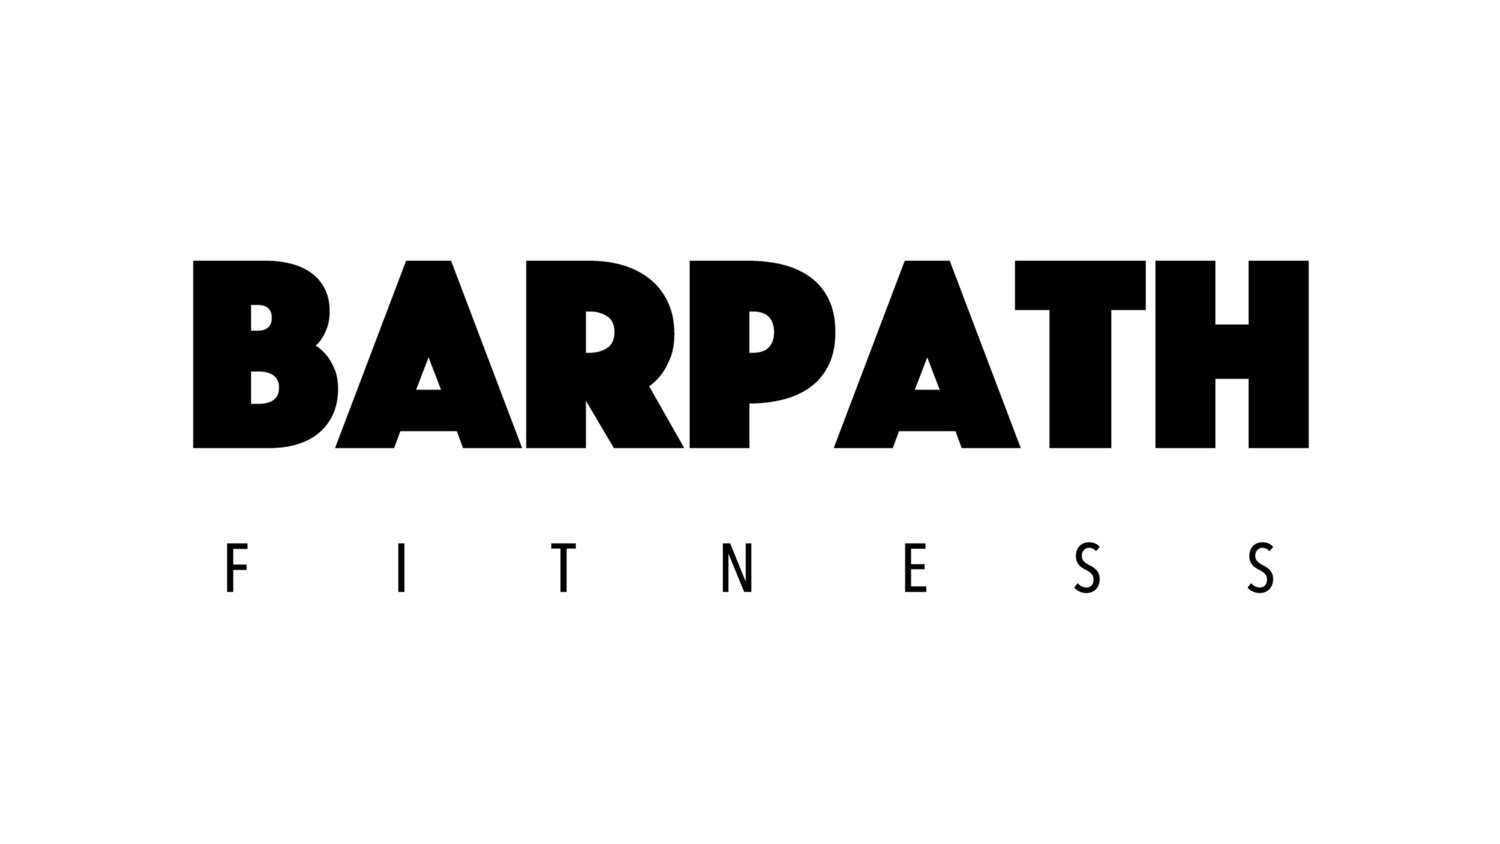 Bar Path Fitness